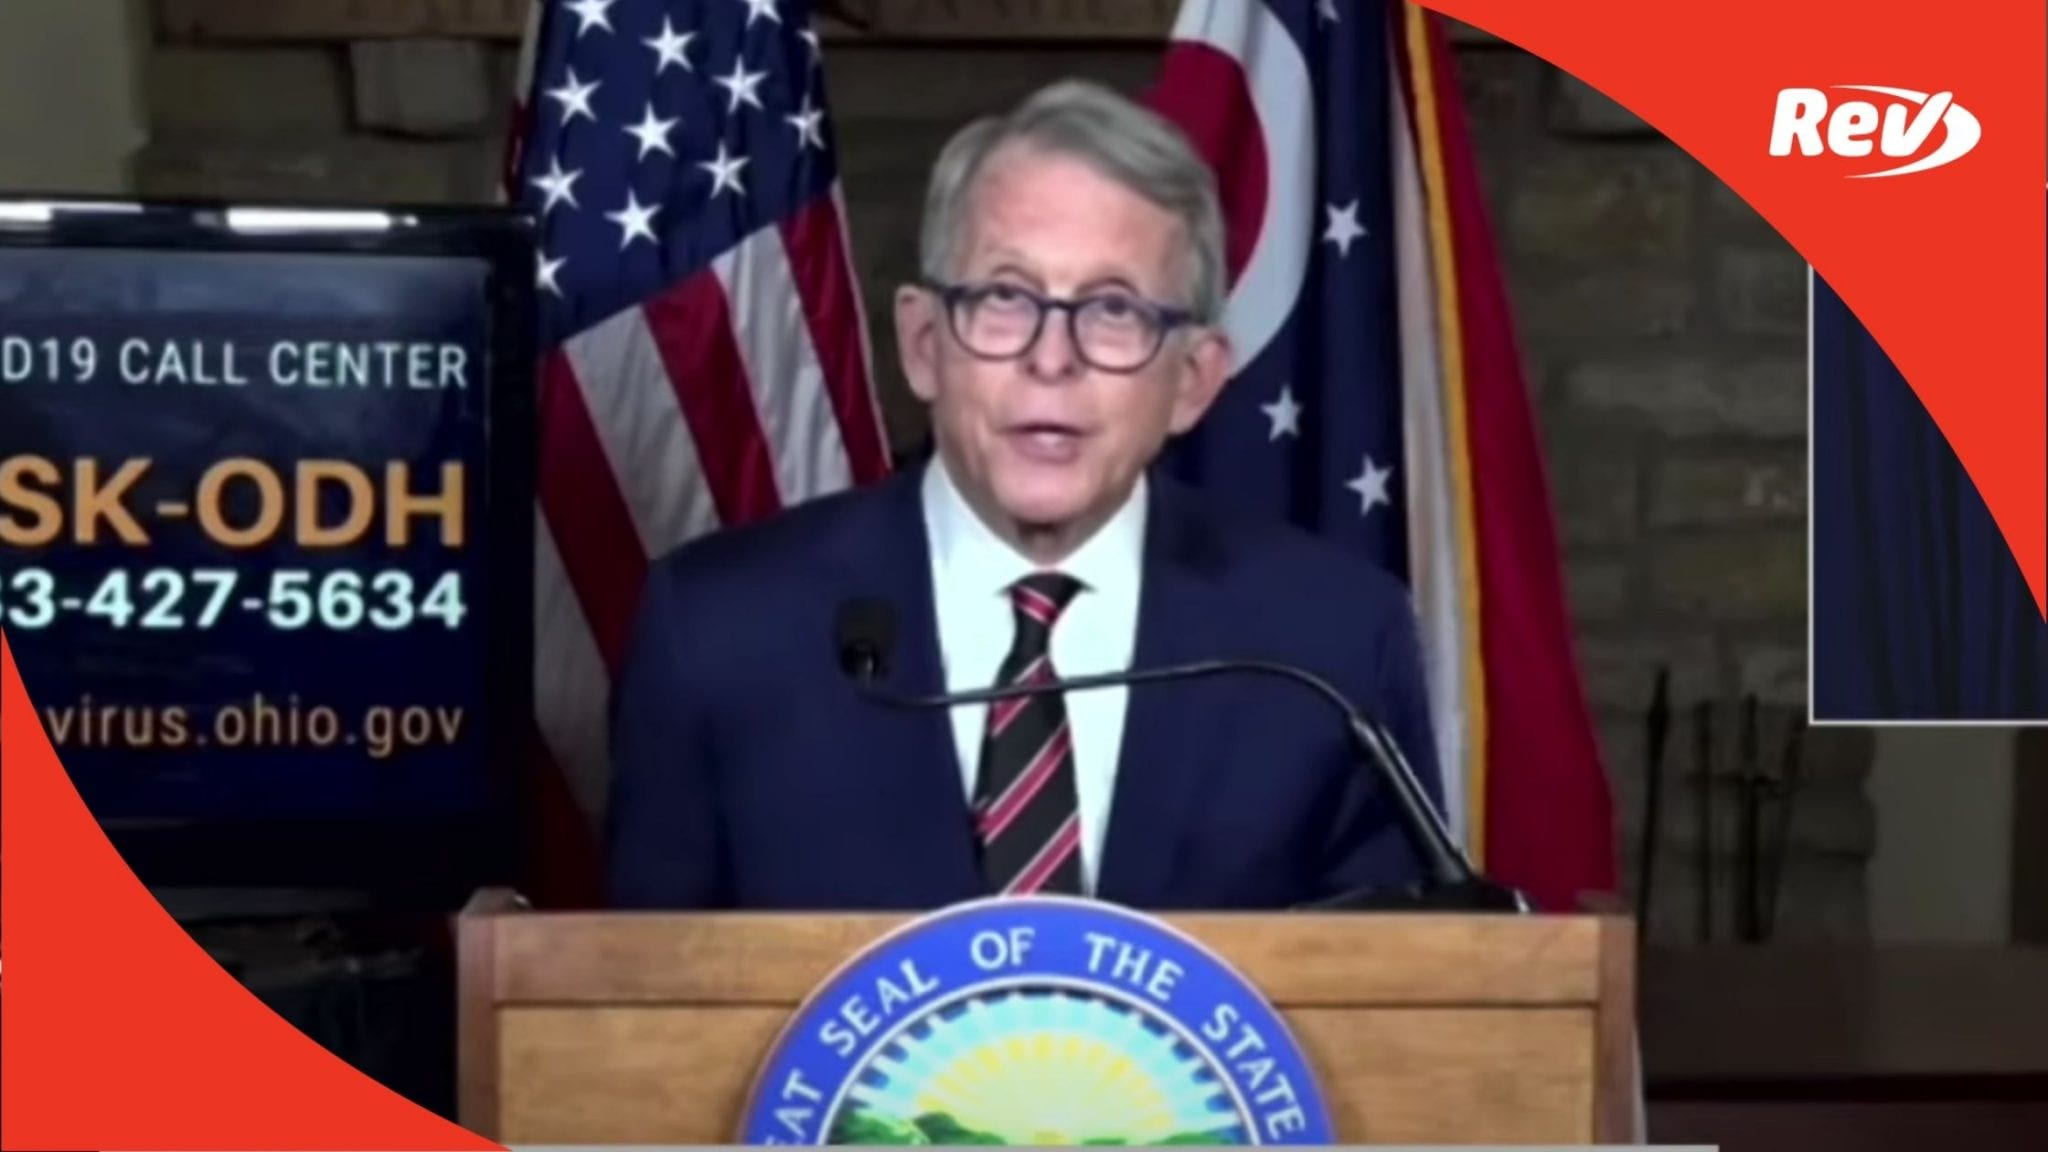 Ohio Gov. Mike DeWine COVID-19 Press Conference Transcript December 14